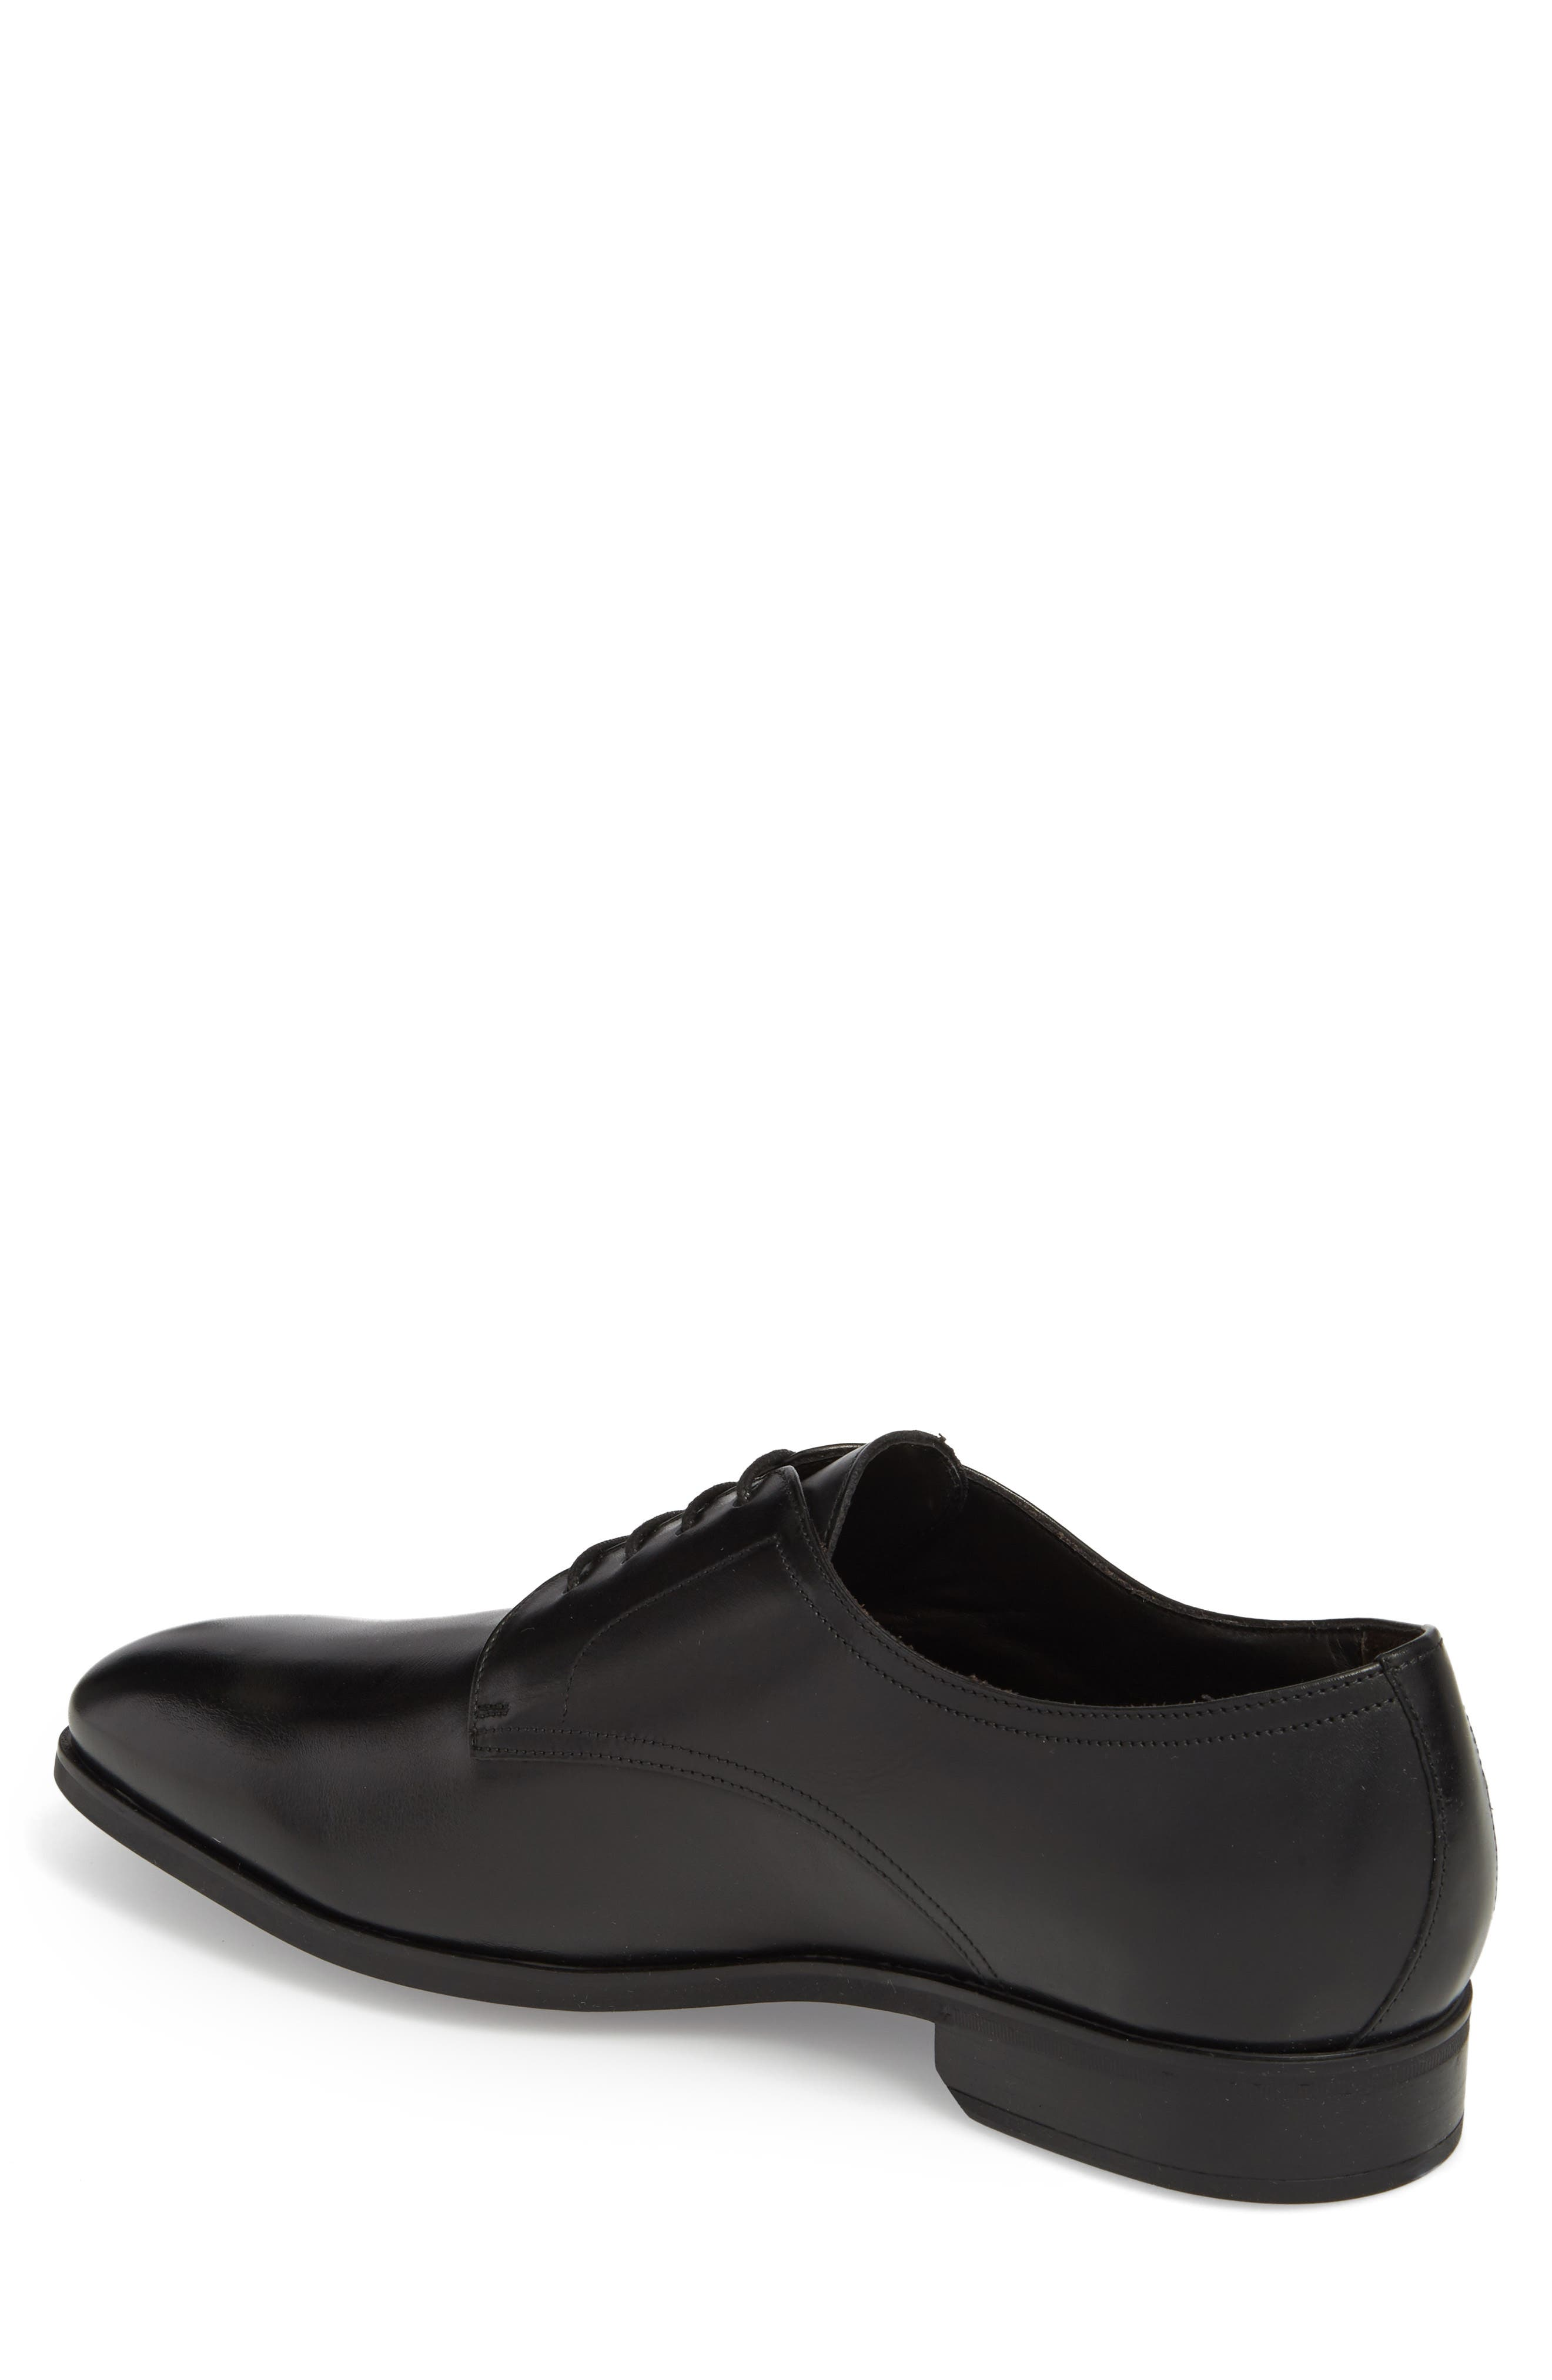 TO BOOT NEW YORK, Dwight Plain Toe Derby, Alternate thumbnail 2, color, BLACK LEATHER